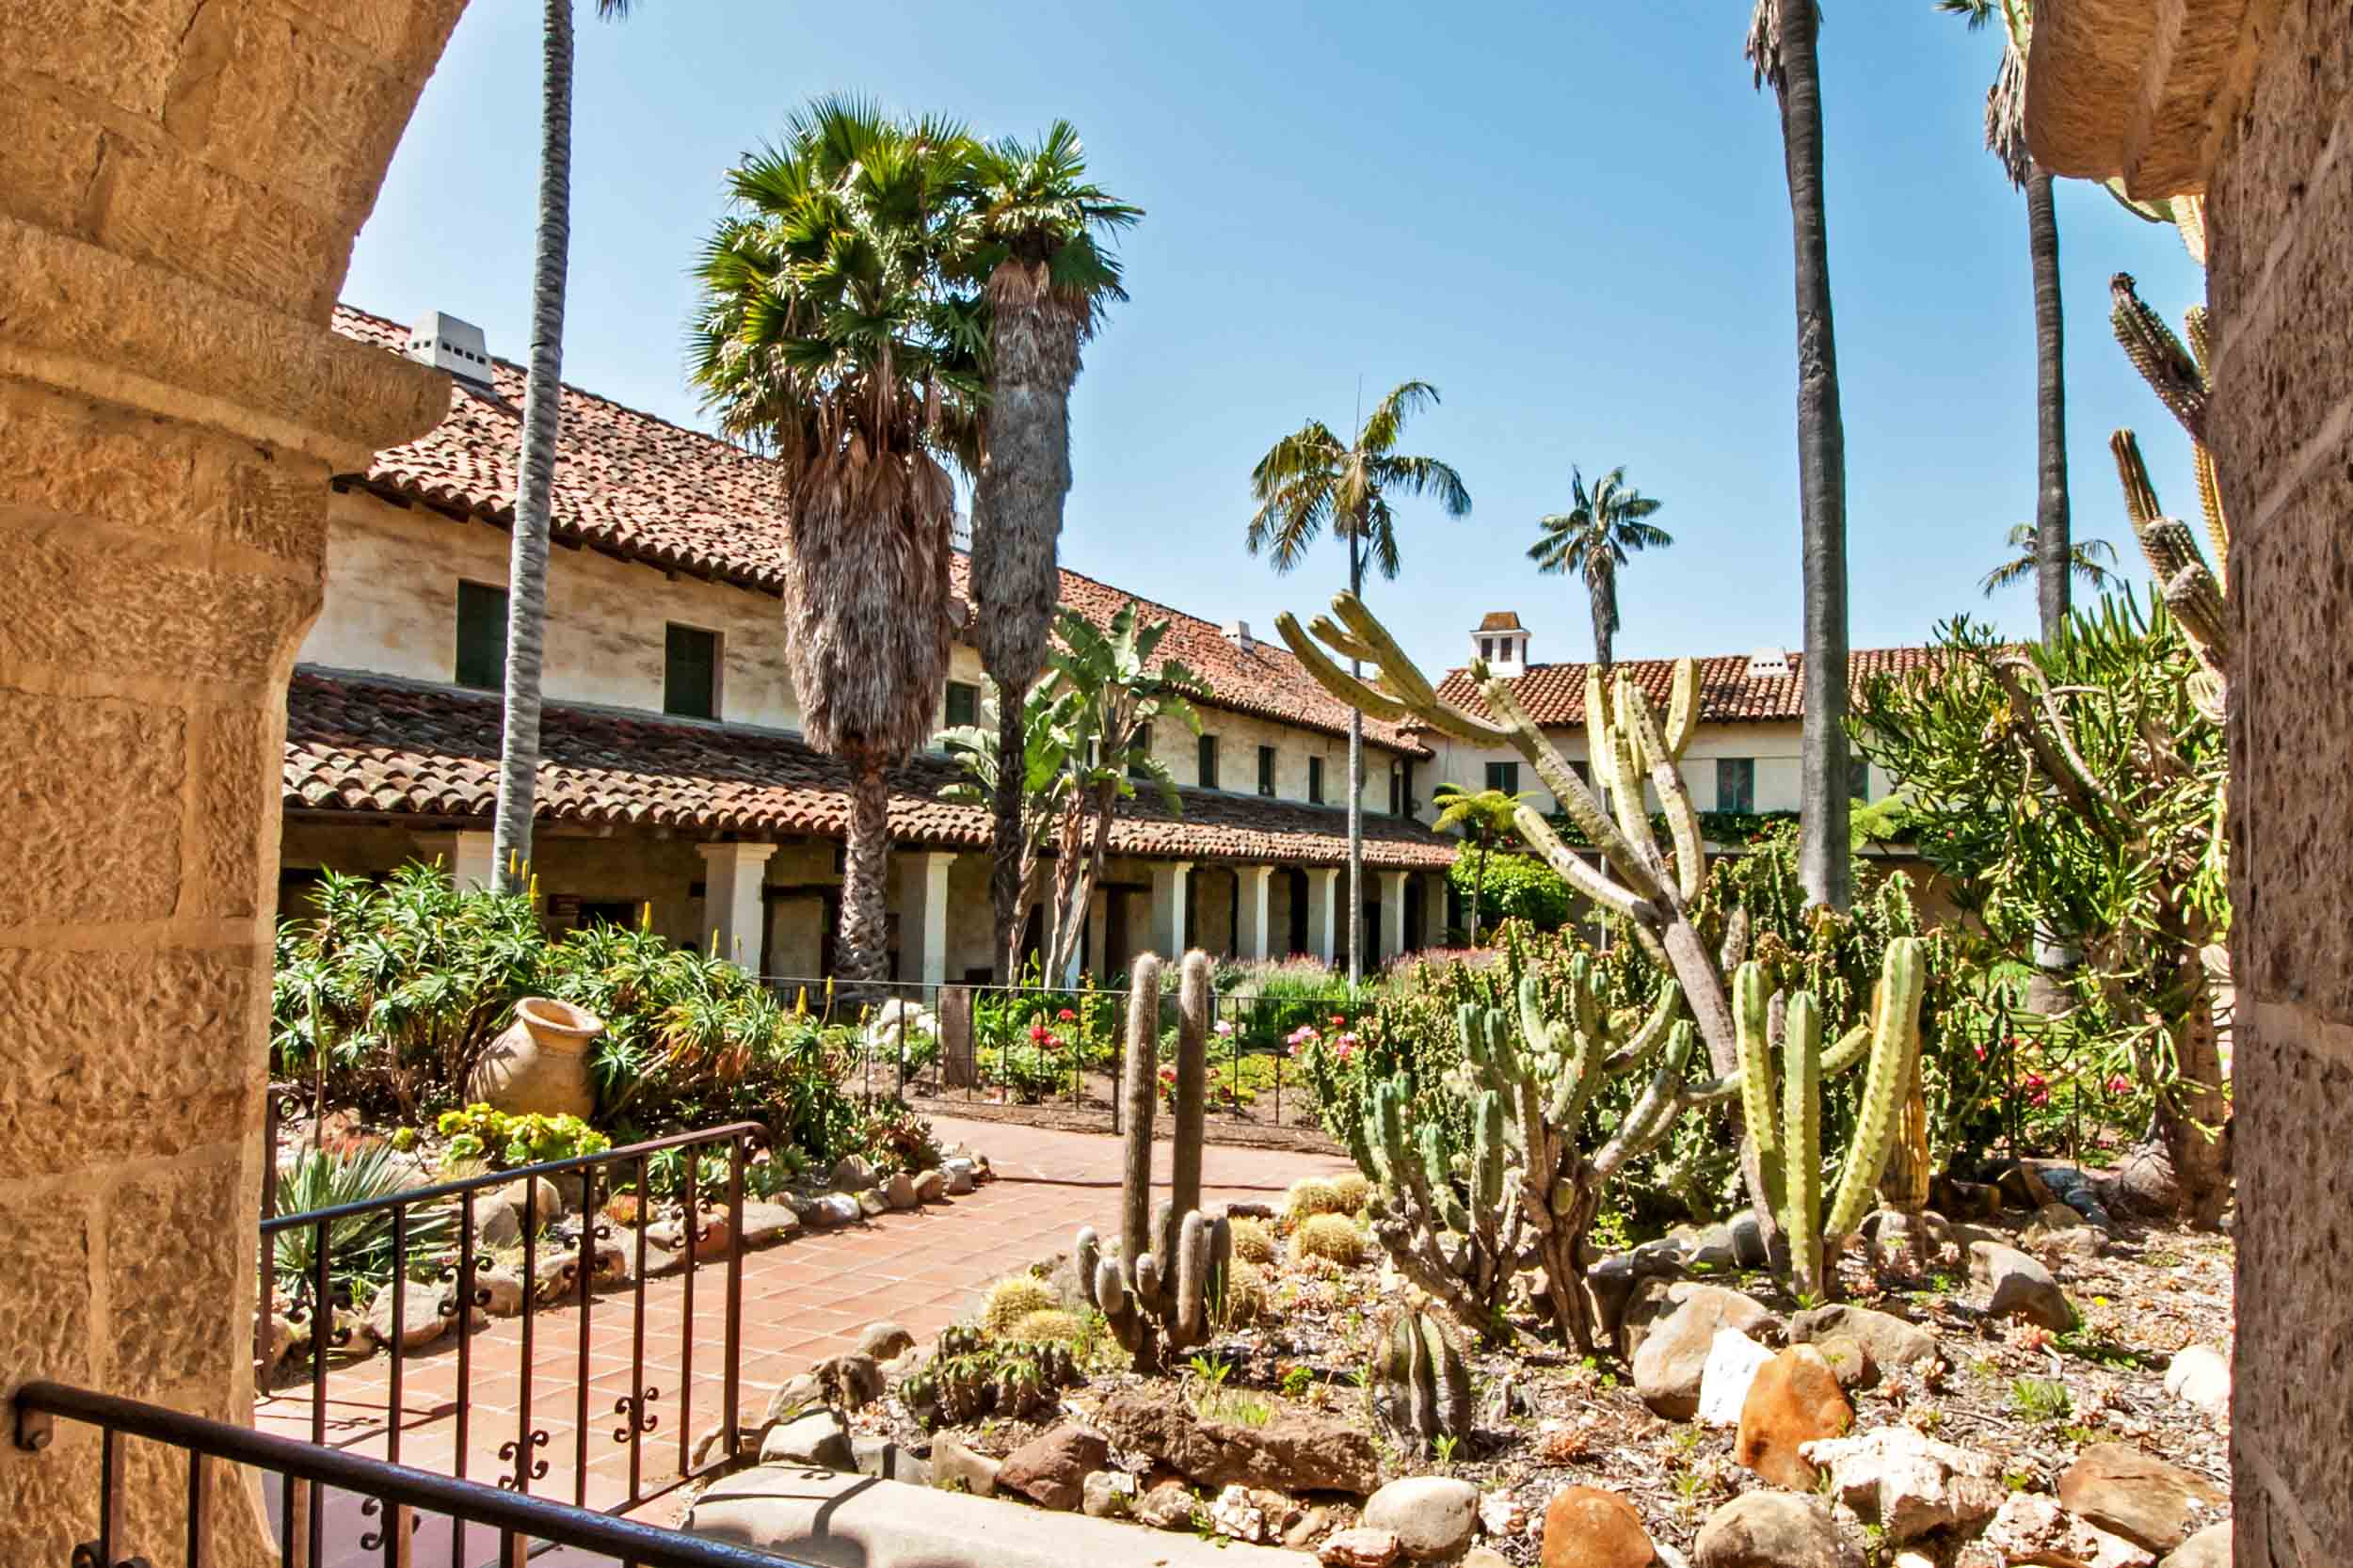 Santa Barbara tours and art classes | Arts & Culture